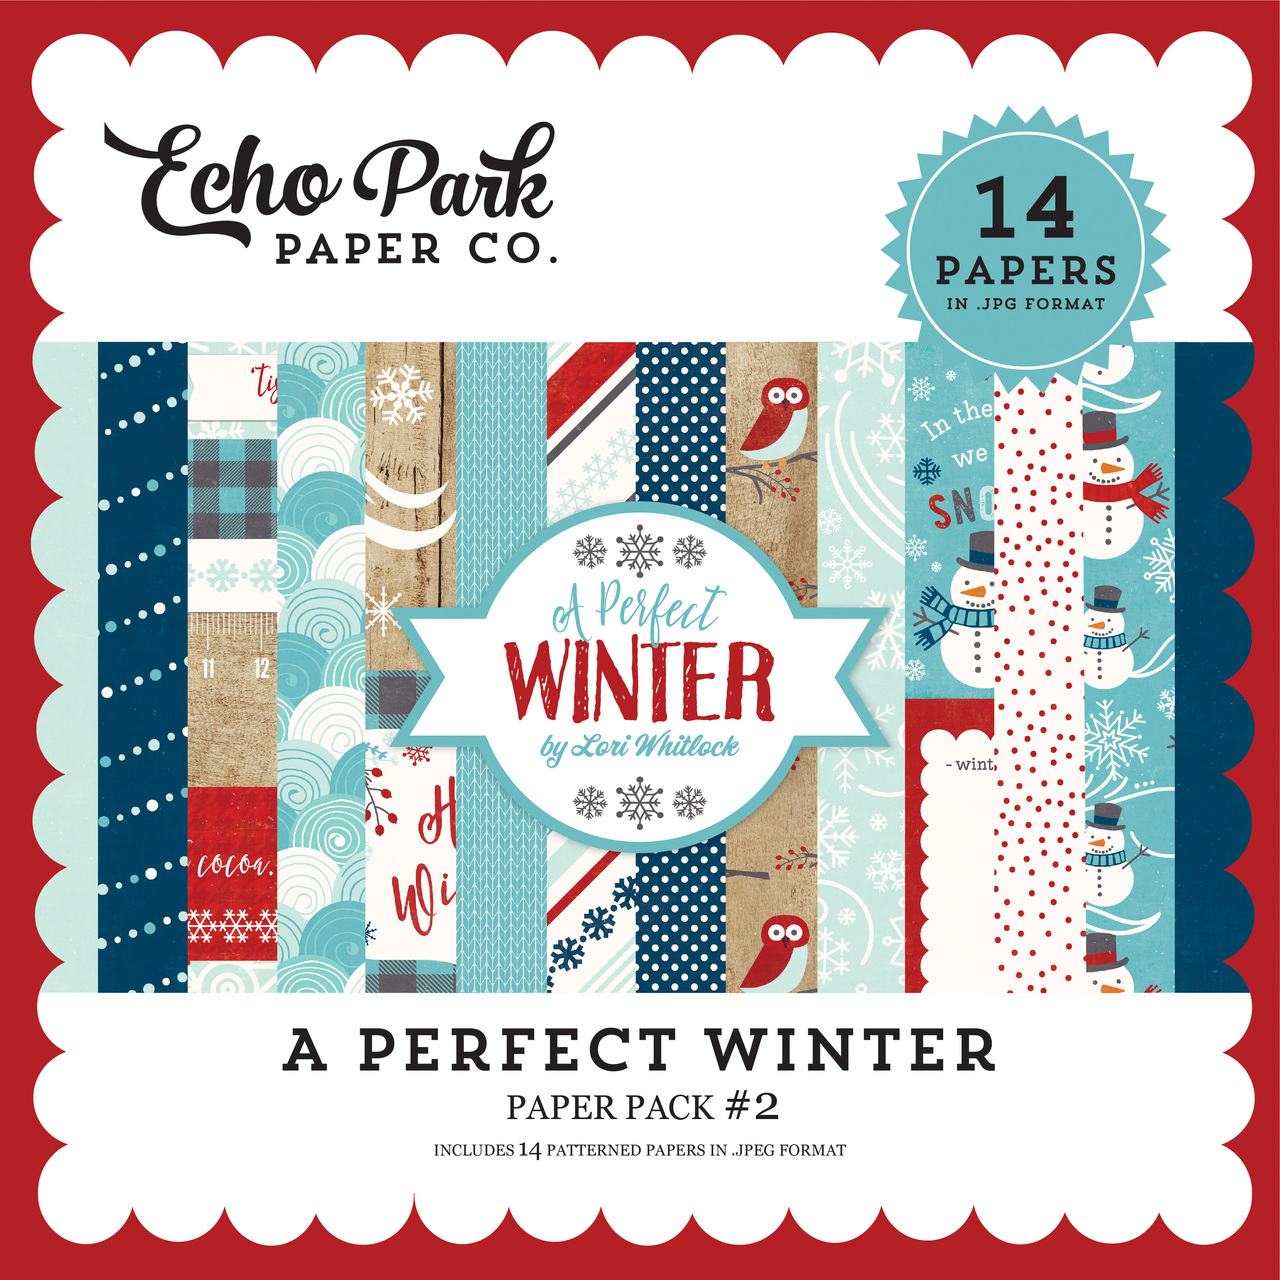 A Perfect Winter Paper Pack #2